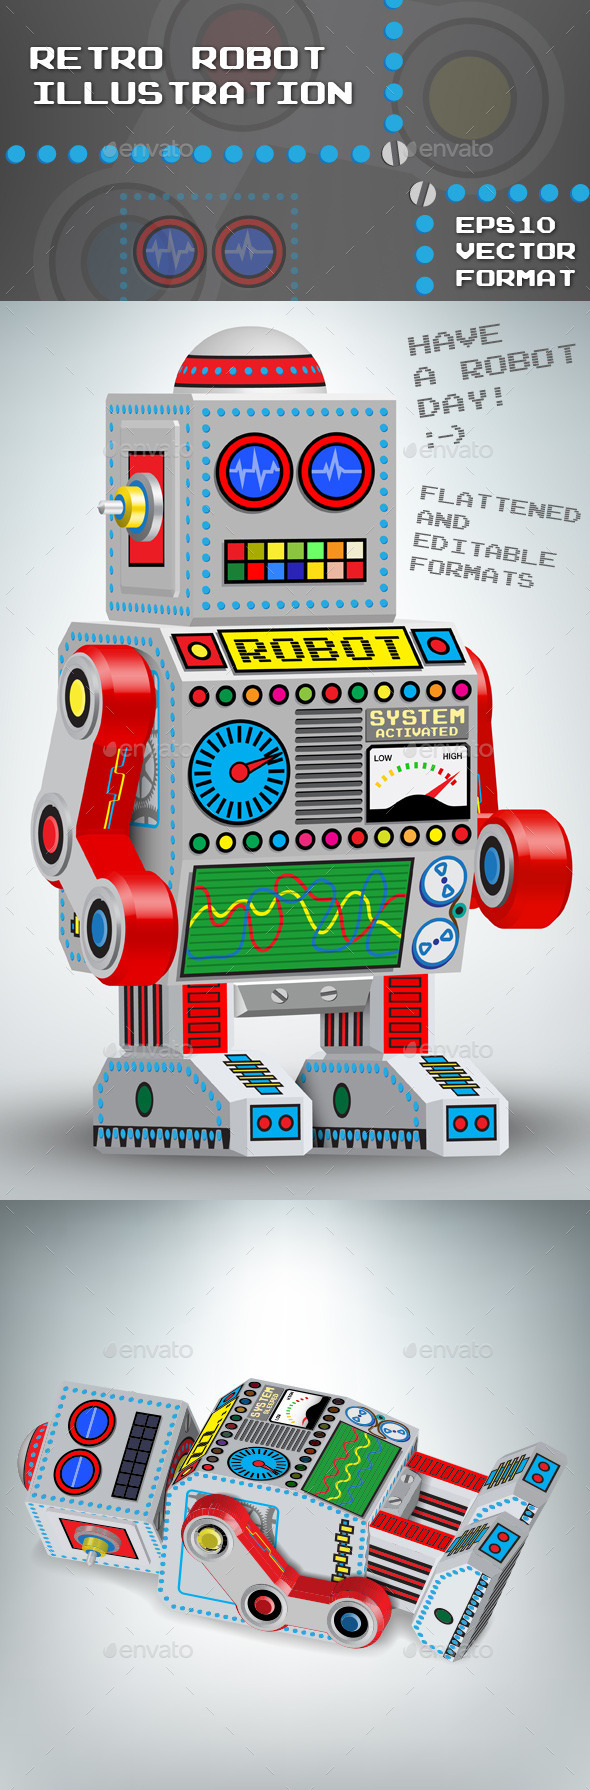 Retro robot toy 3d illustration - Retro Technology